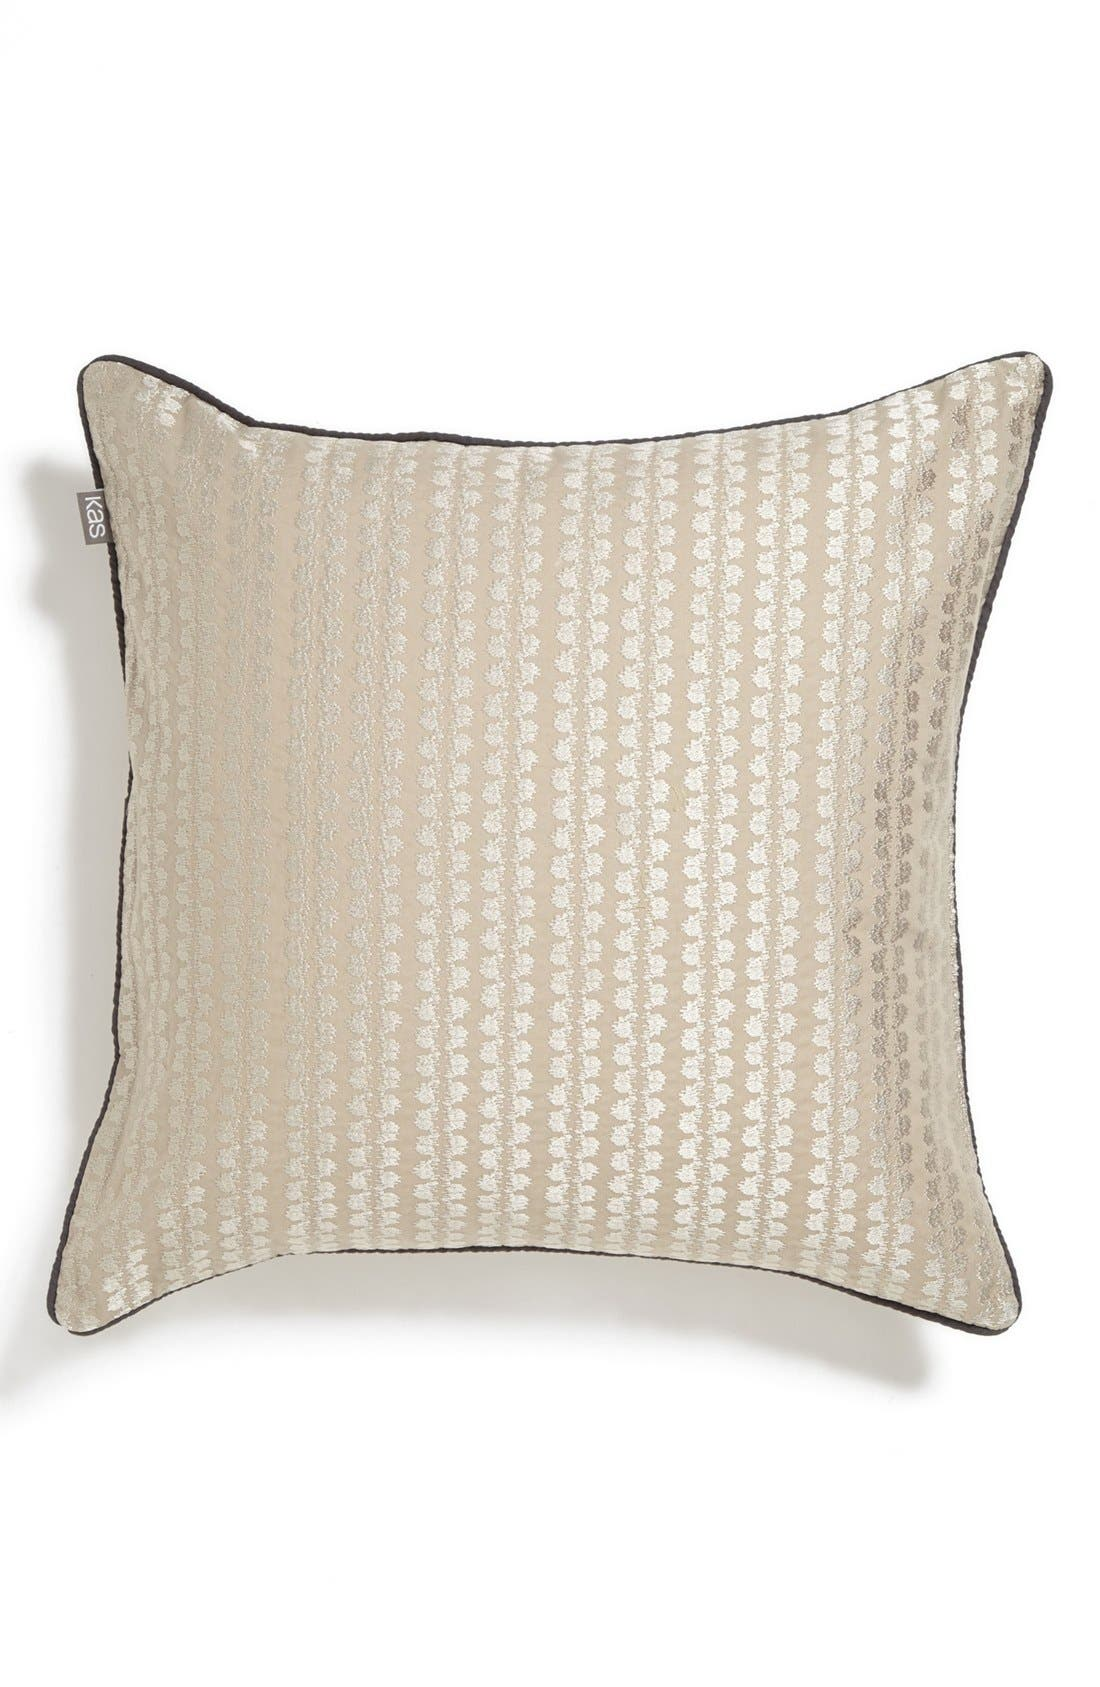 Alternate Image 1 Selected - Kas Designs 'Martinique - Rocha' Pillow